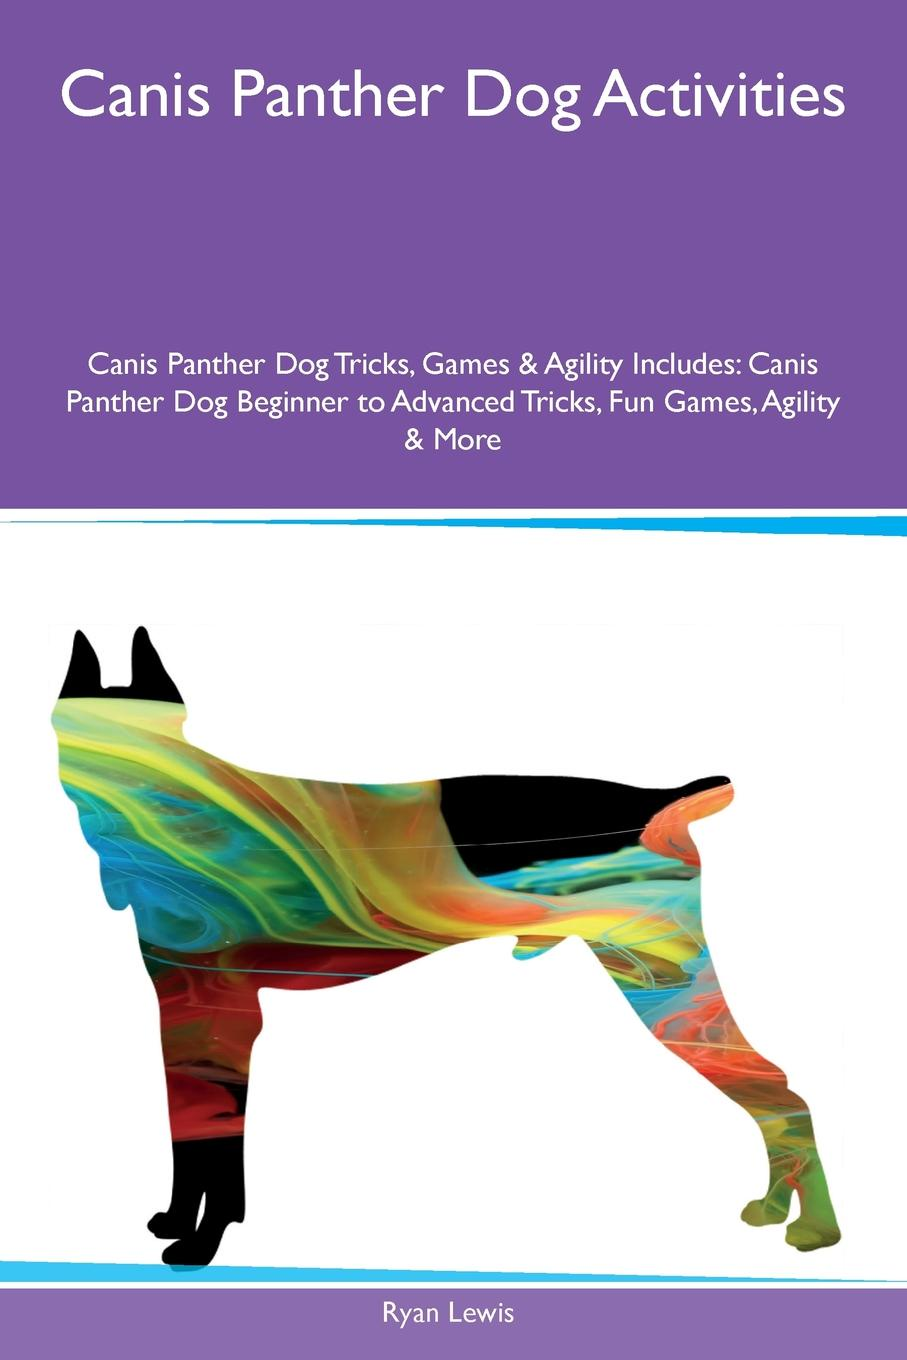 Ryan Lewis Canis Panther Dog Activities Canis Panther Dog Tricks, Games & Agility Includes. Canis Panther Dog Beginner to Advanced Tricks, Fun Games, Agility & More цена и фото